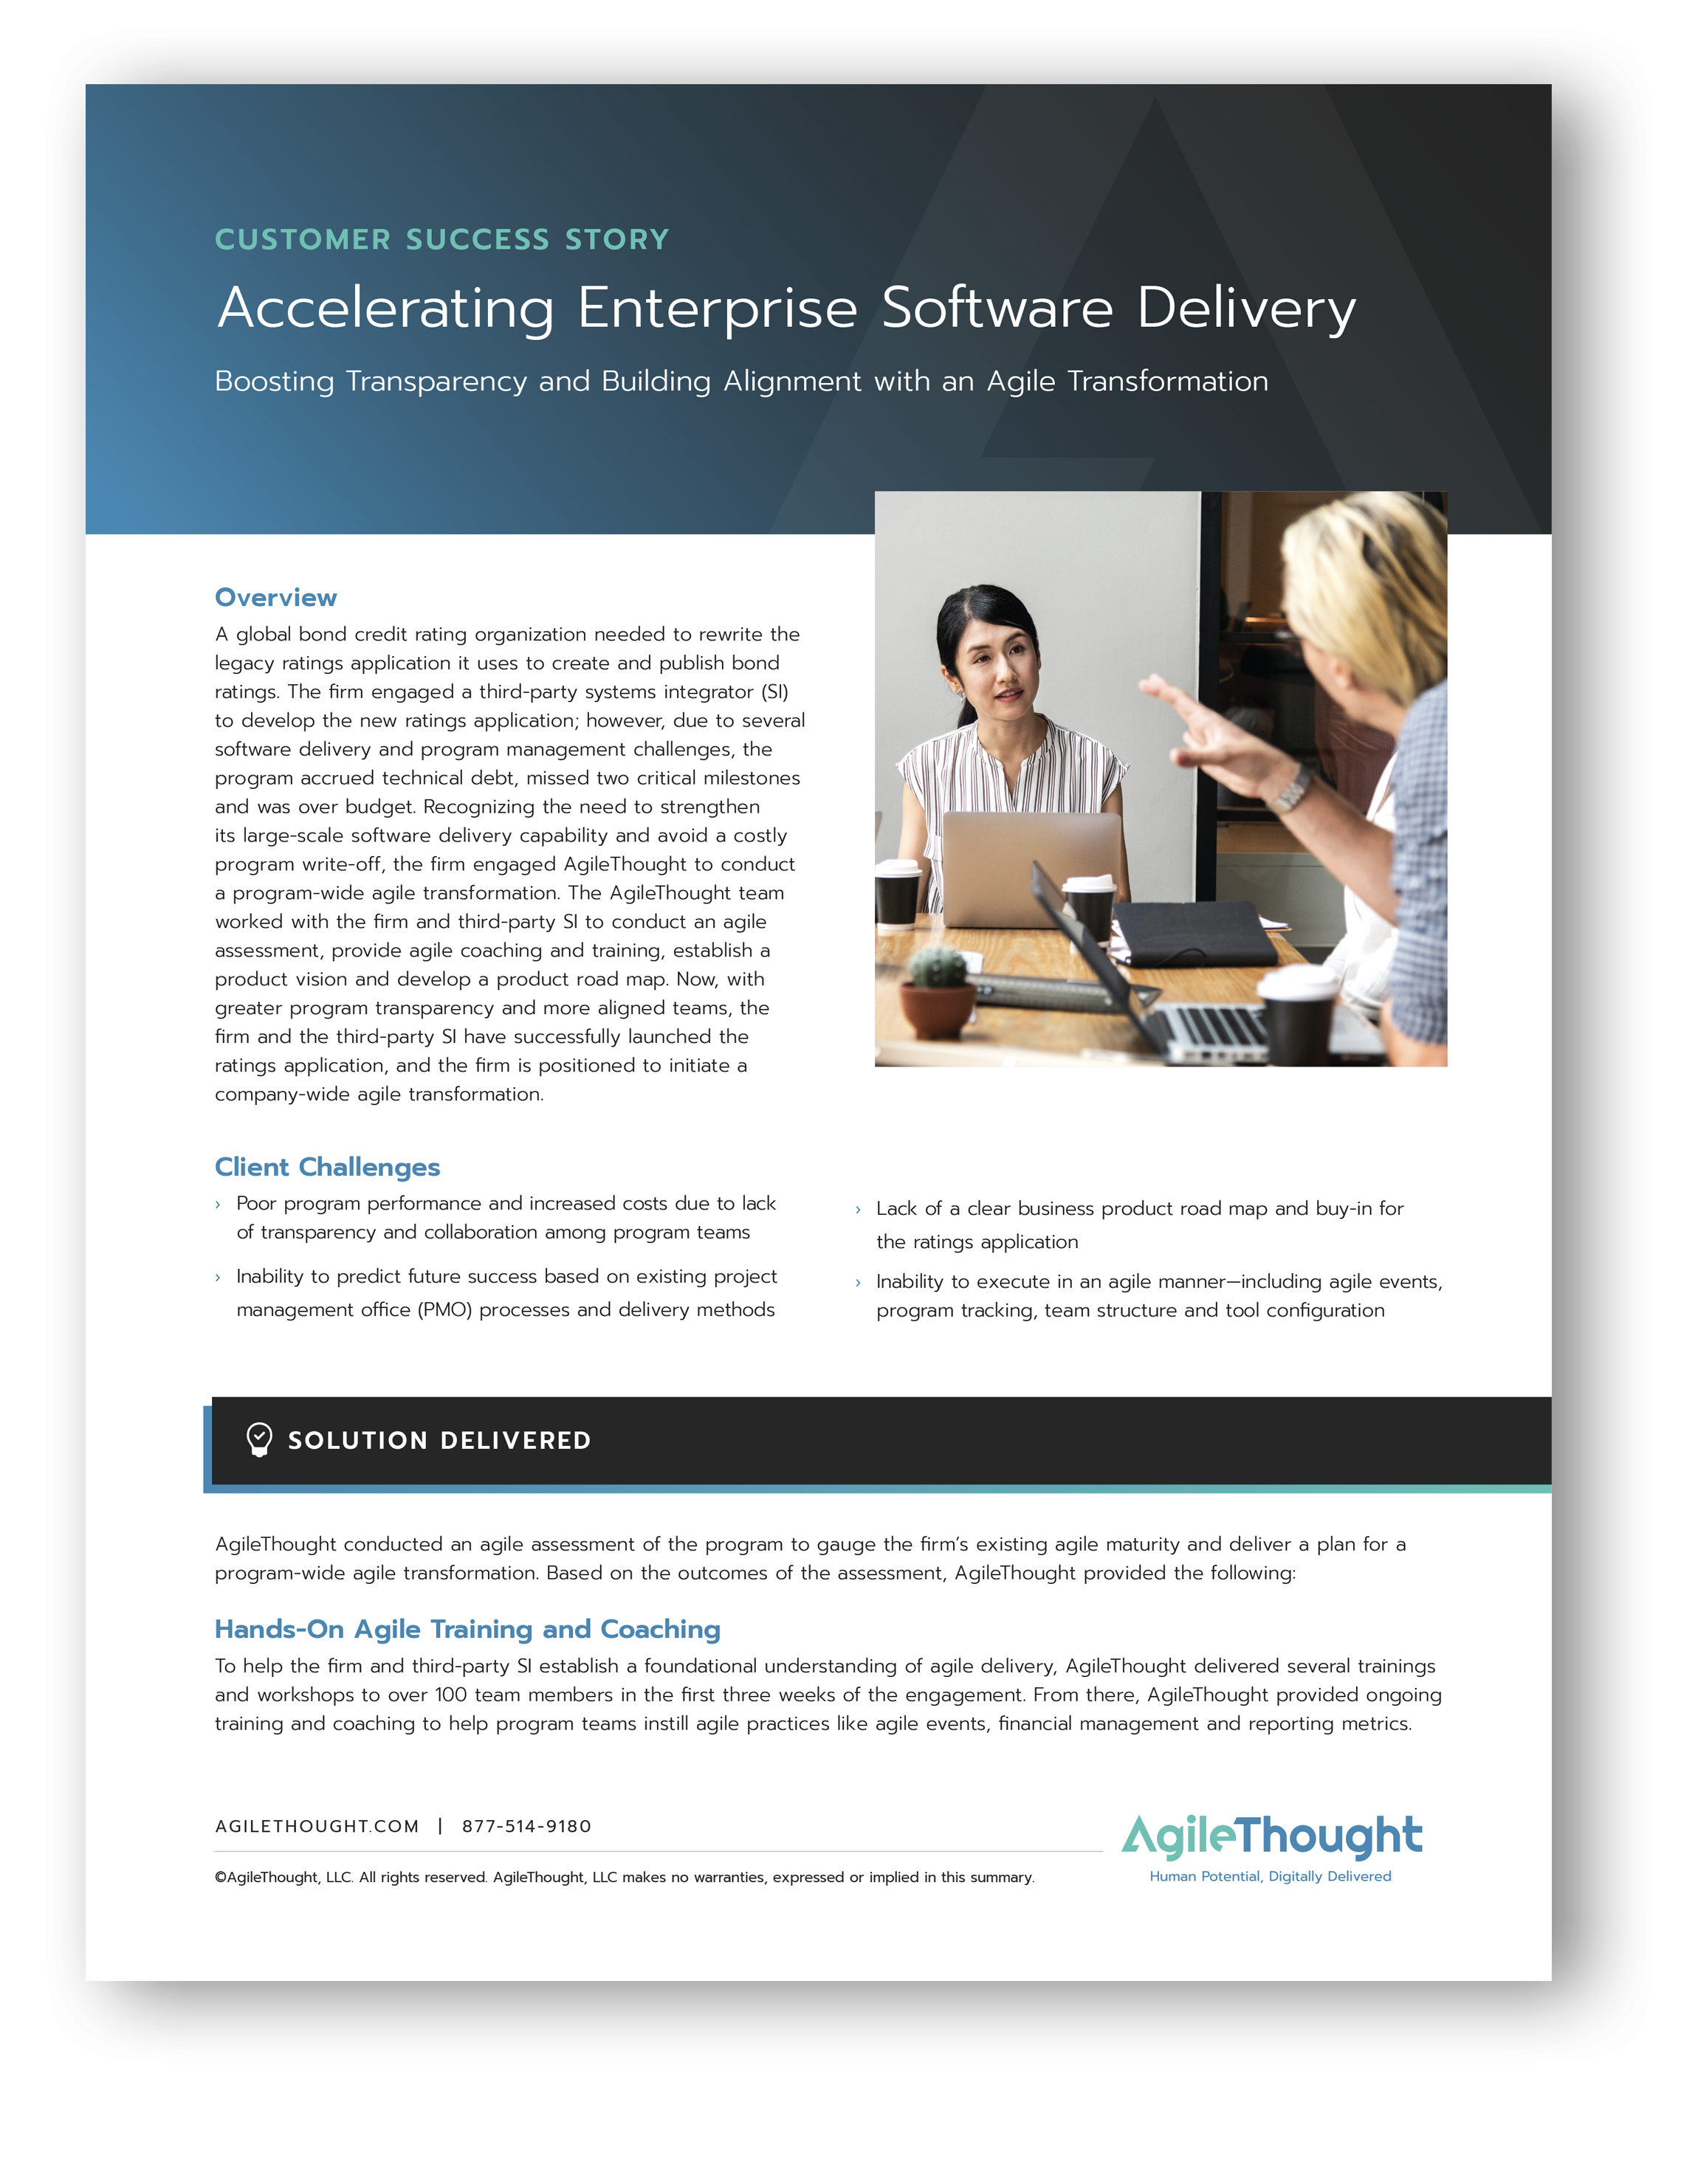 accelerating enterprise software delivery